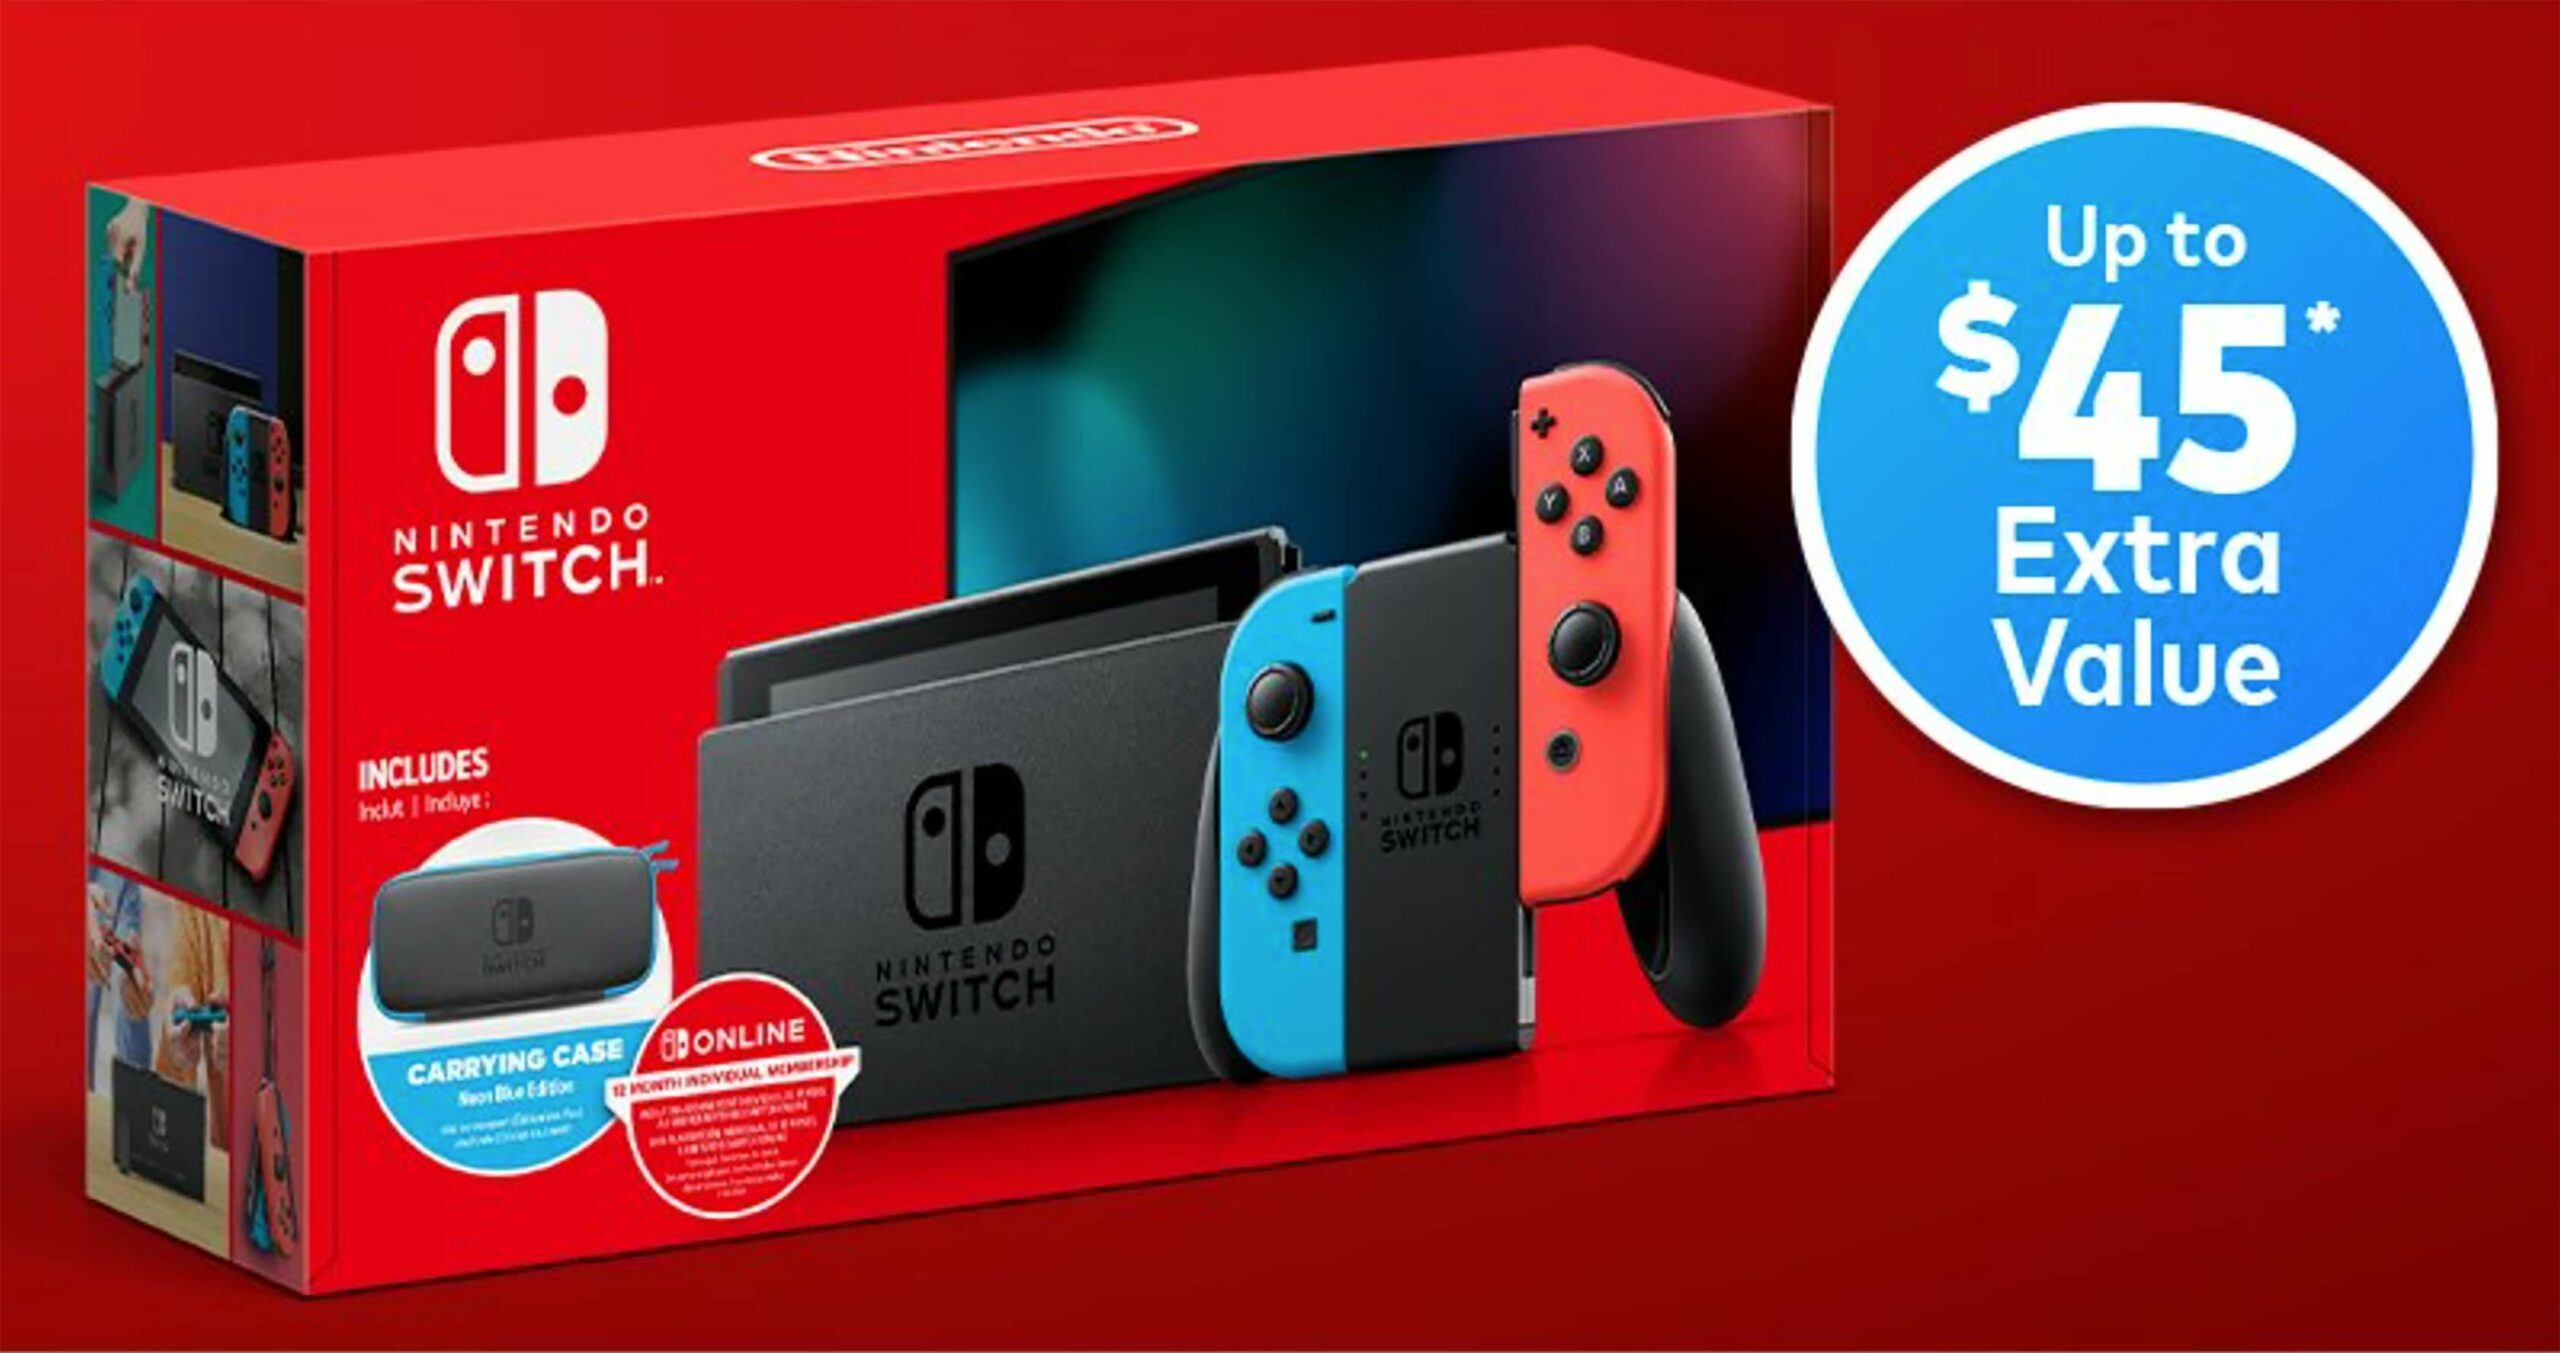 Nintendo Switch Walmart bundle